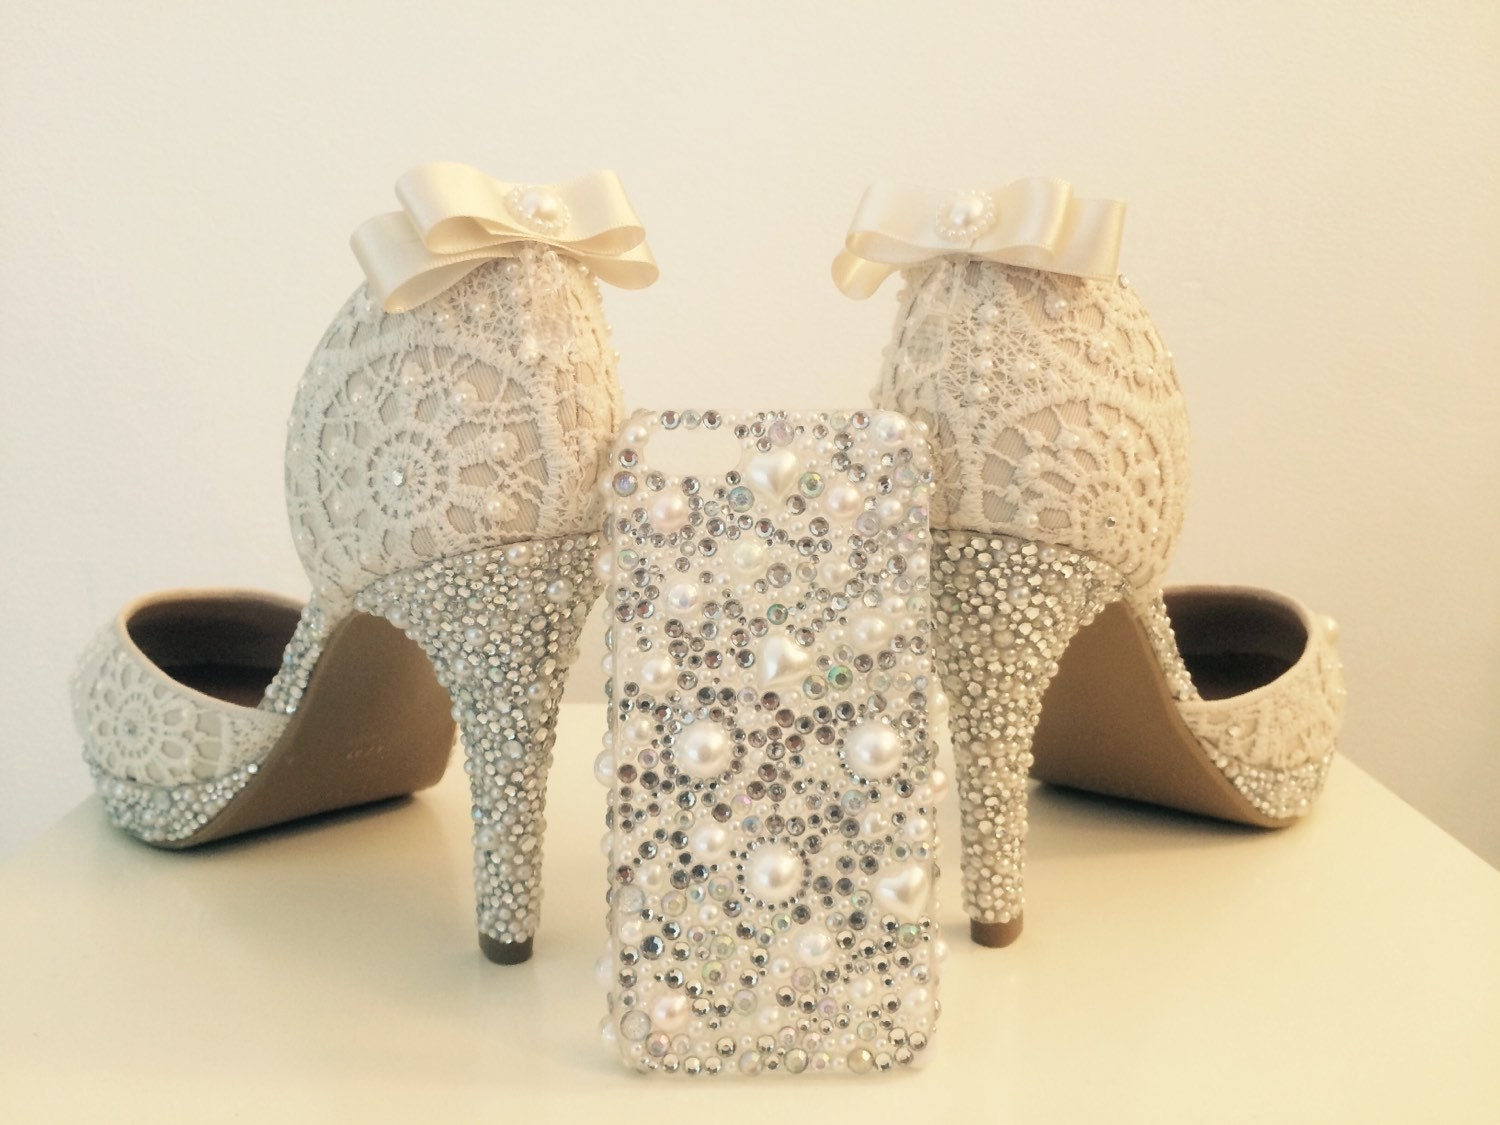 Bespoke Sparkly Wedding Shoes By CherryBlossomWales On Etsy